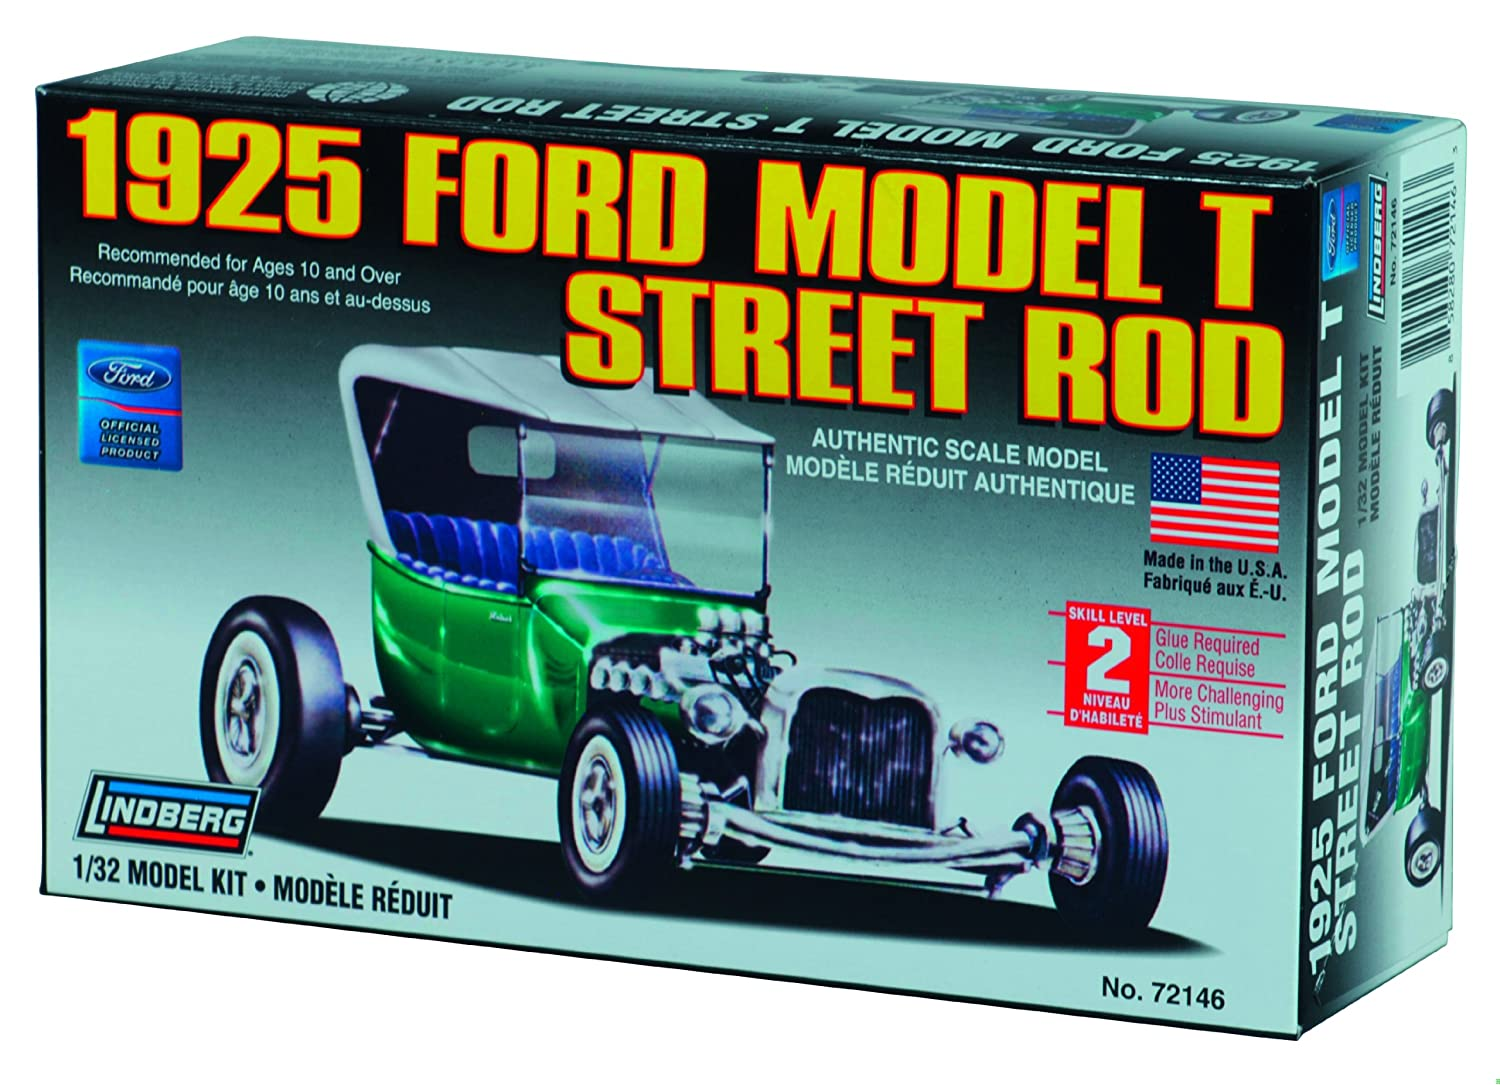 Amazon.com: Lindberg 1:32 scale 1925 Ford T Street Rod: Toys & Games